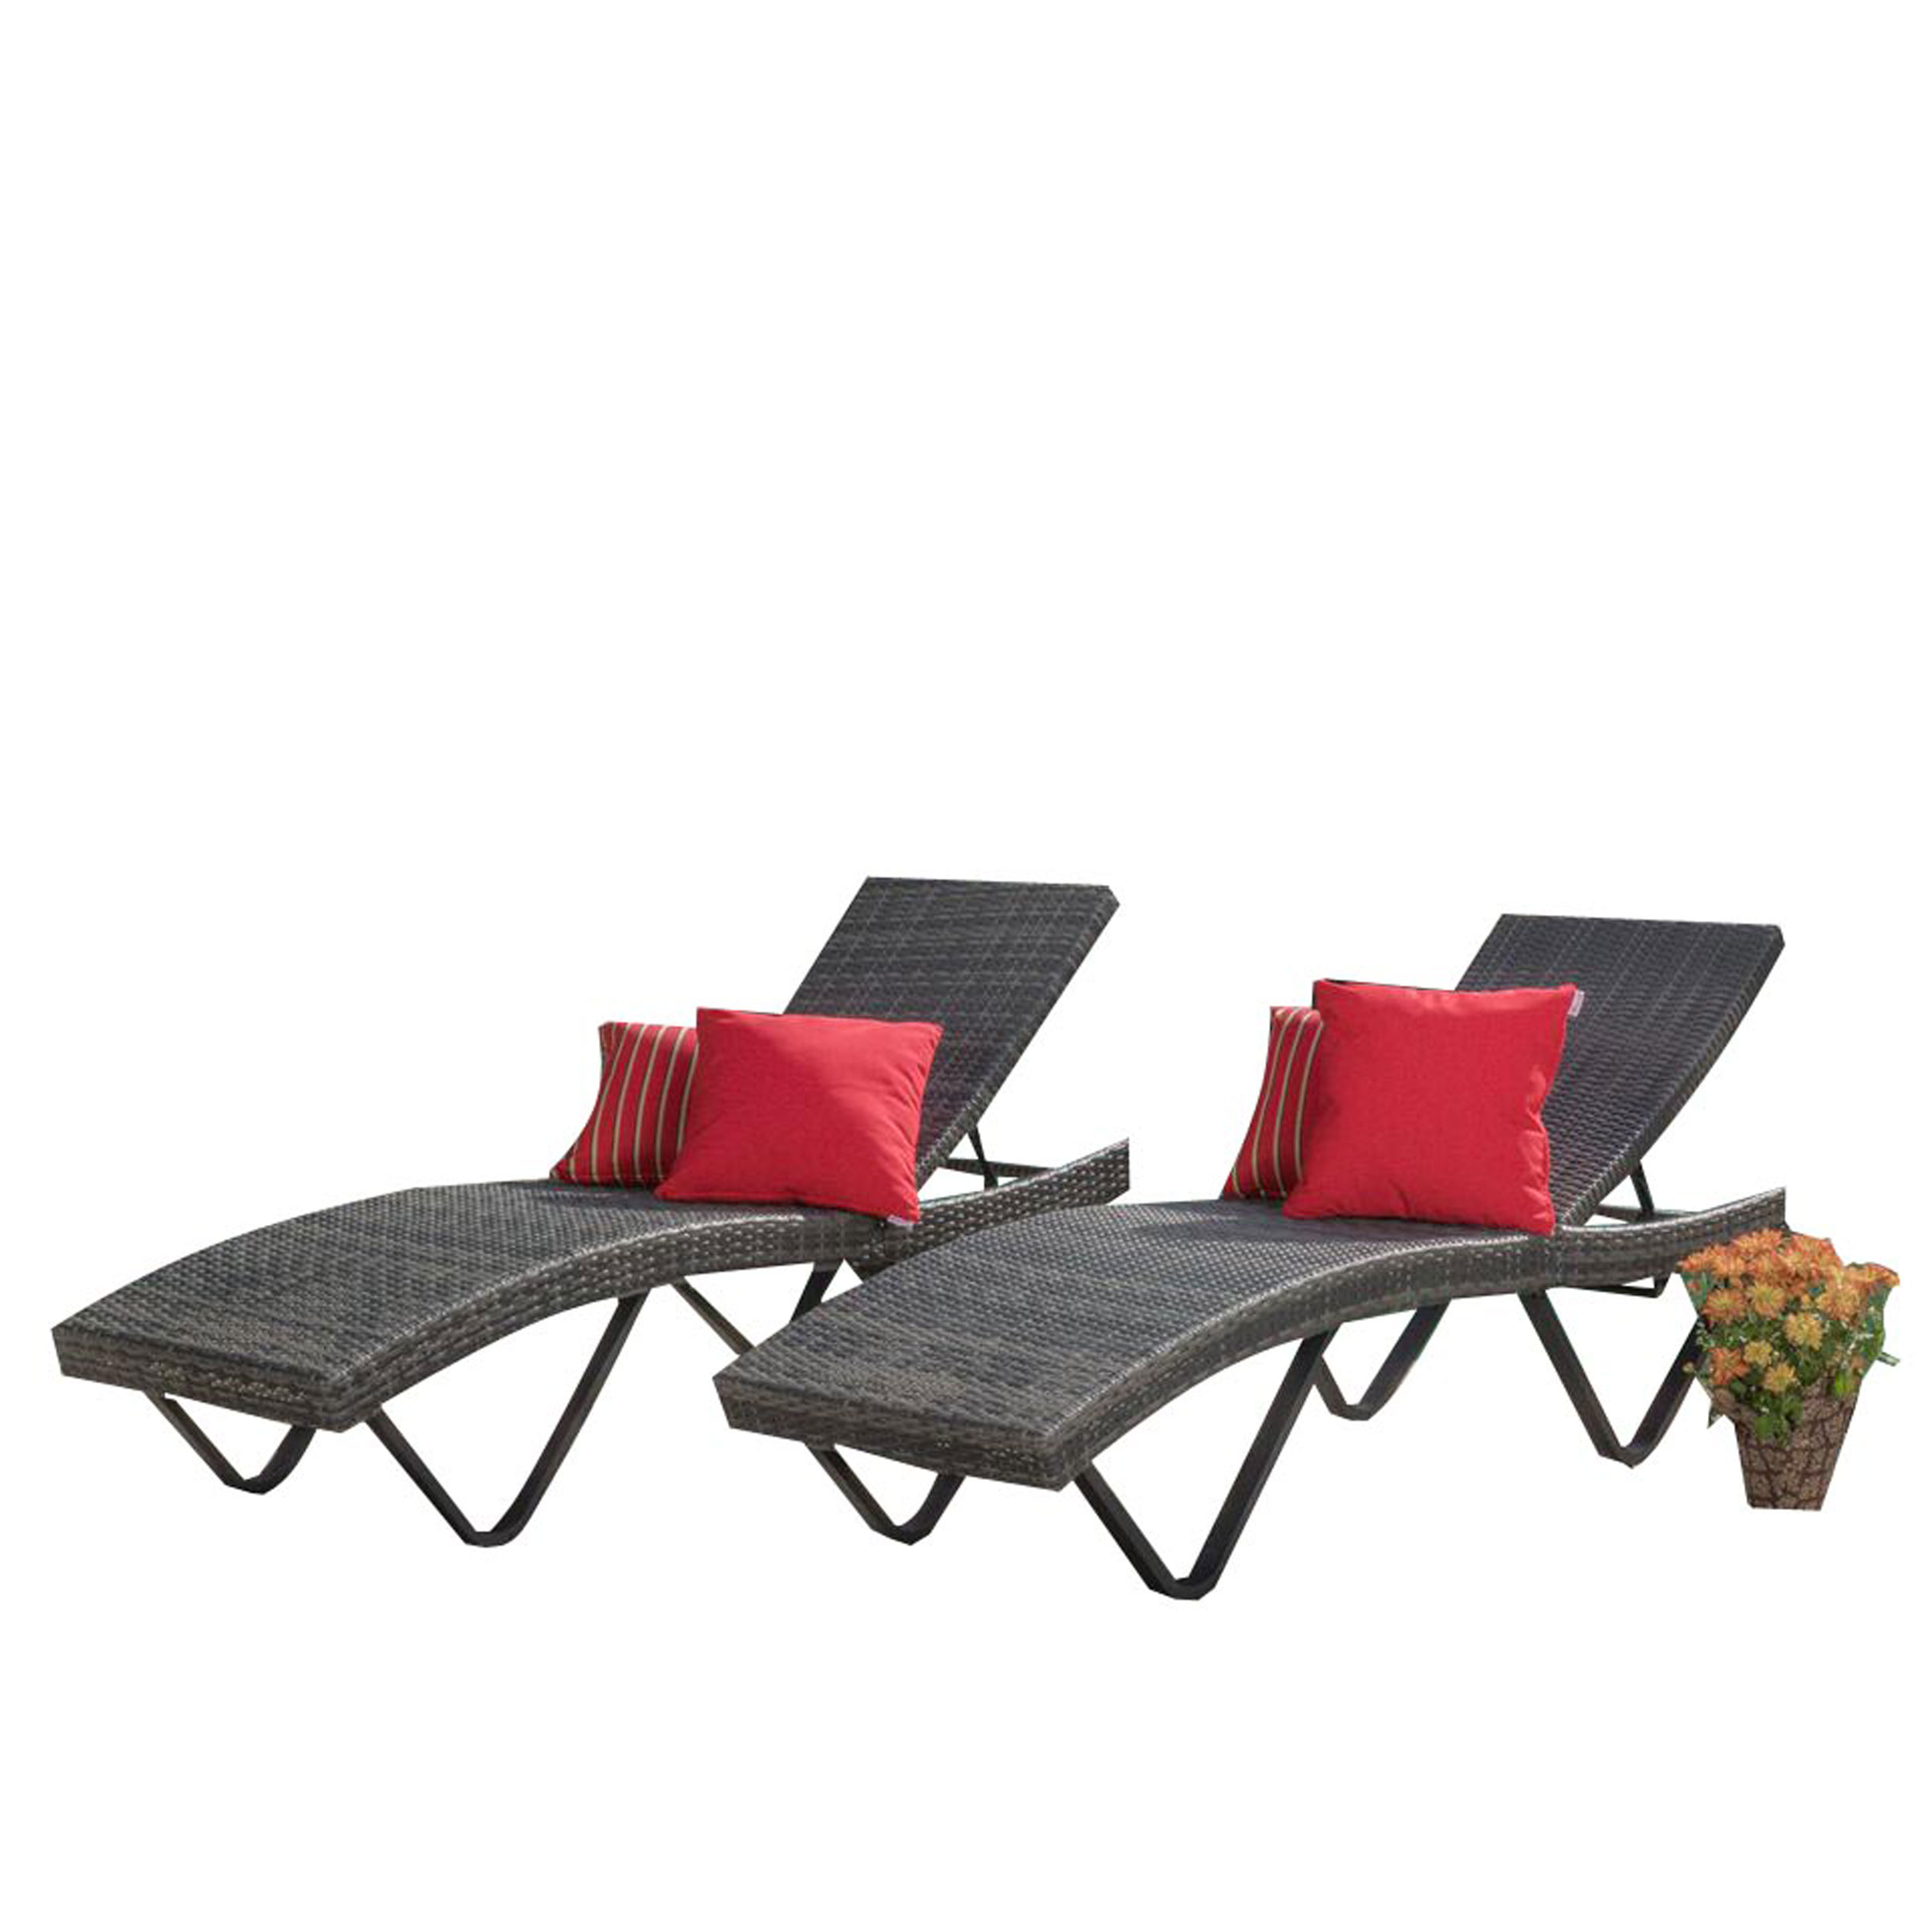 San Marin Outdoor Wicker Chaise Lounge, Set of 2, Grey